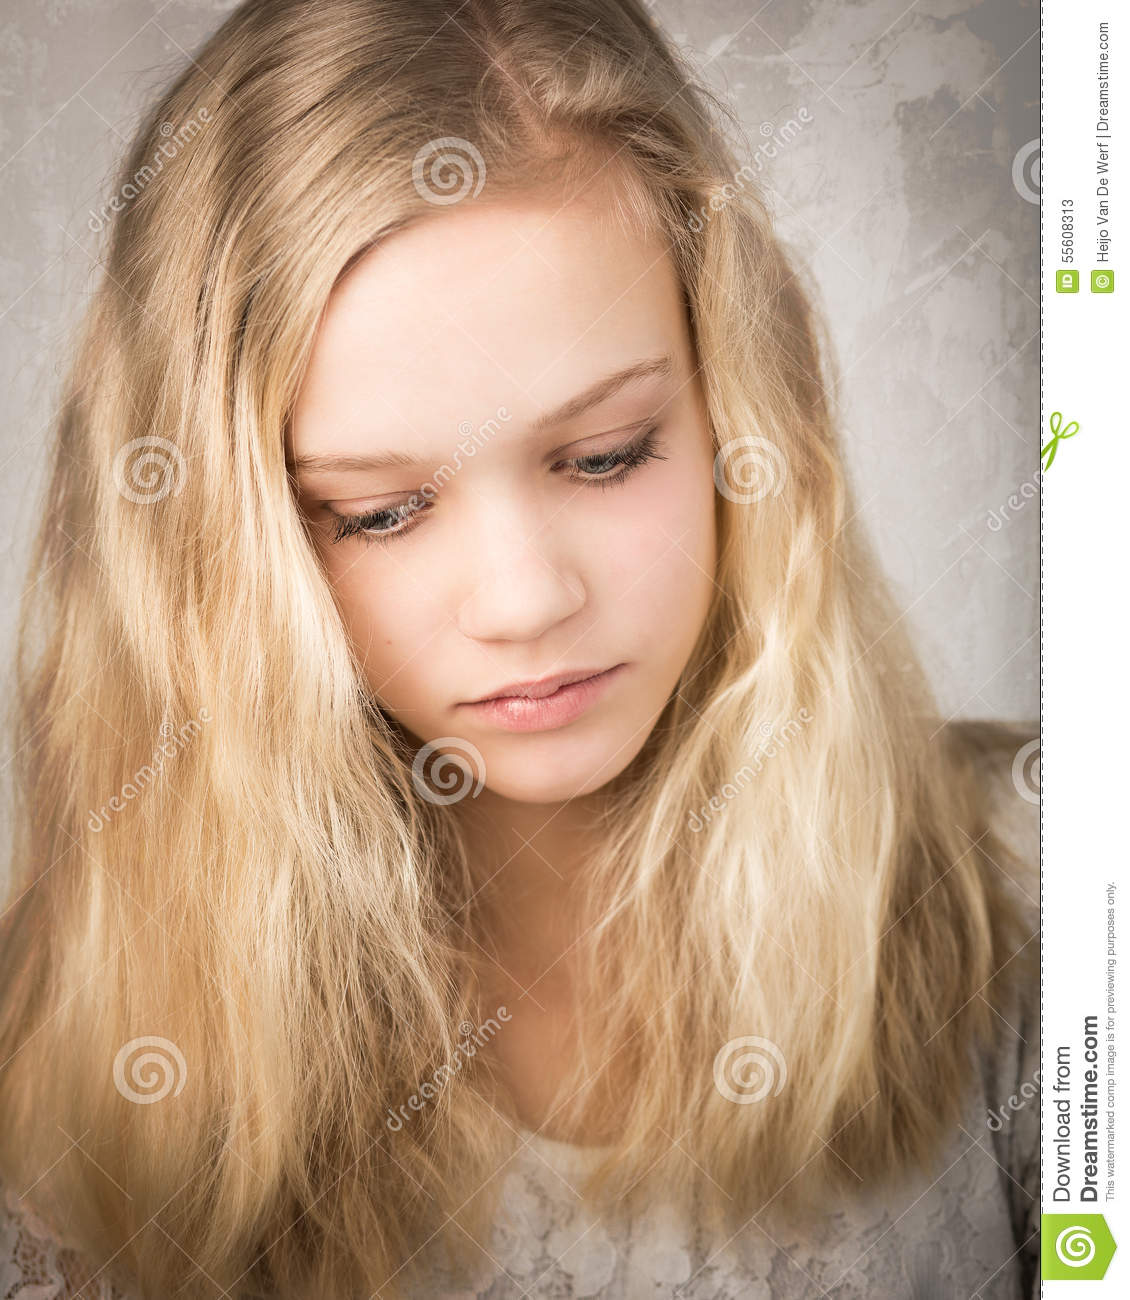 Beautiful Blonde Girl With Long Hair Stock Photo - Image of hair, enjoyment: 28098754